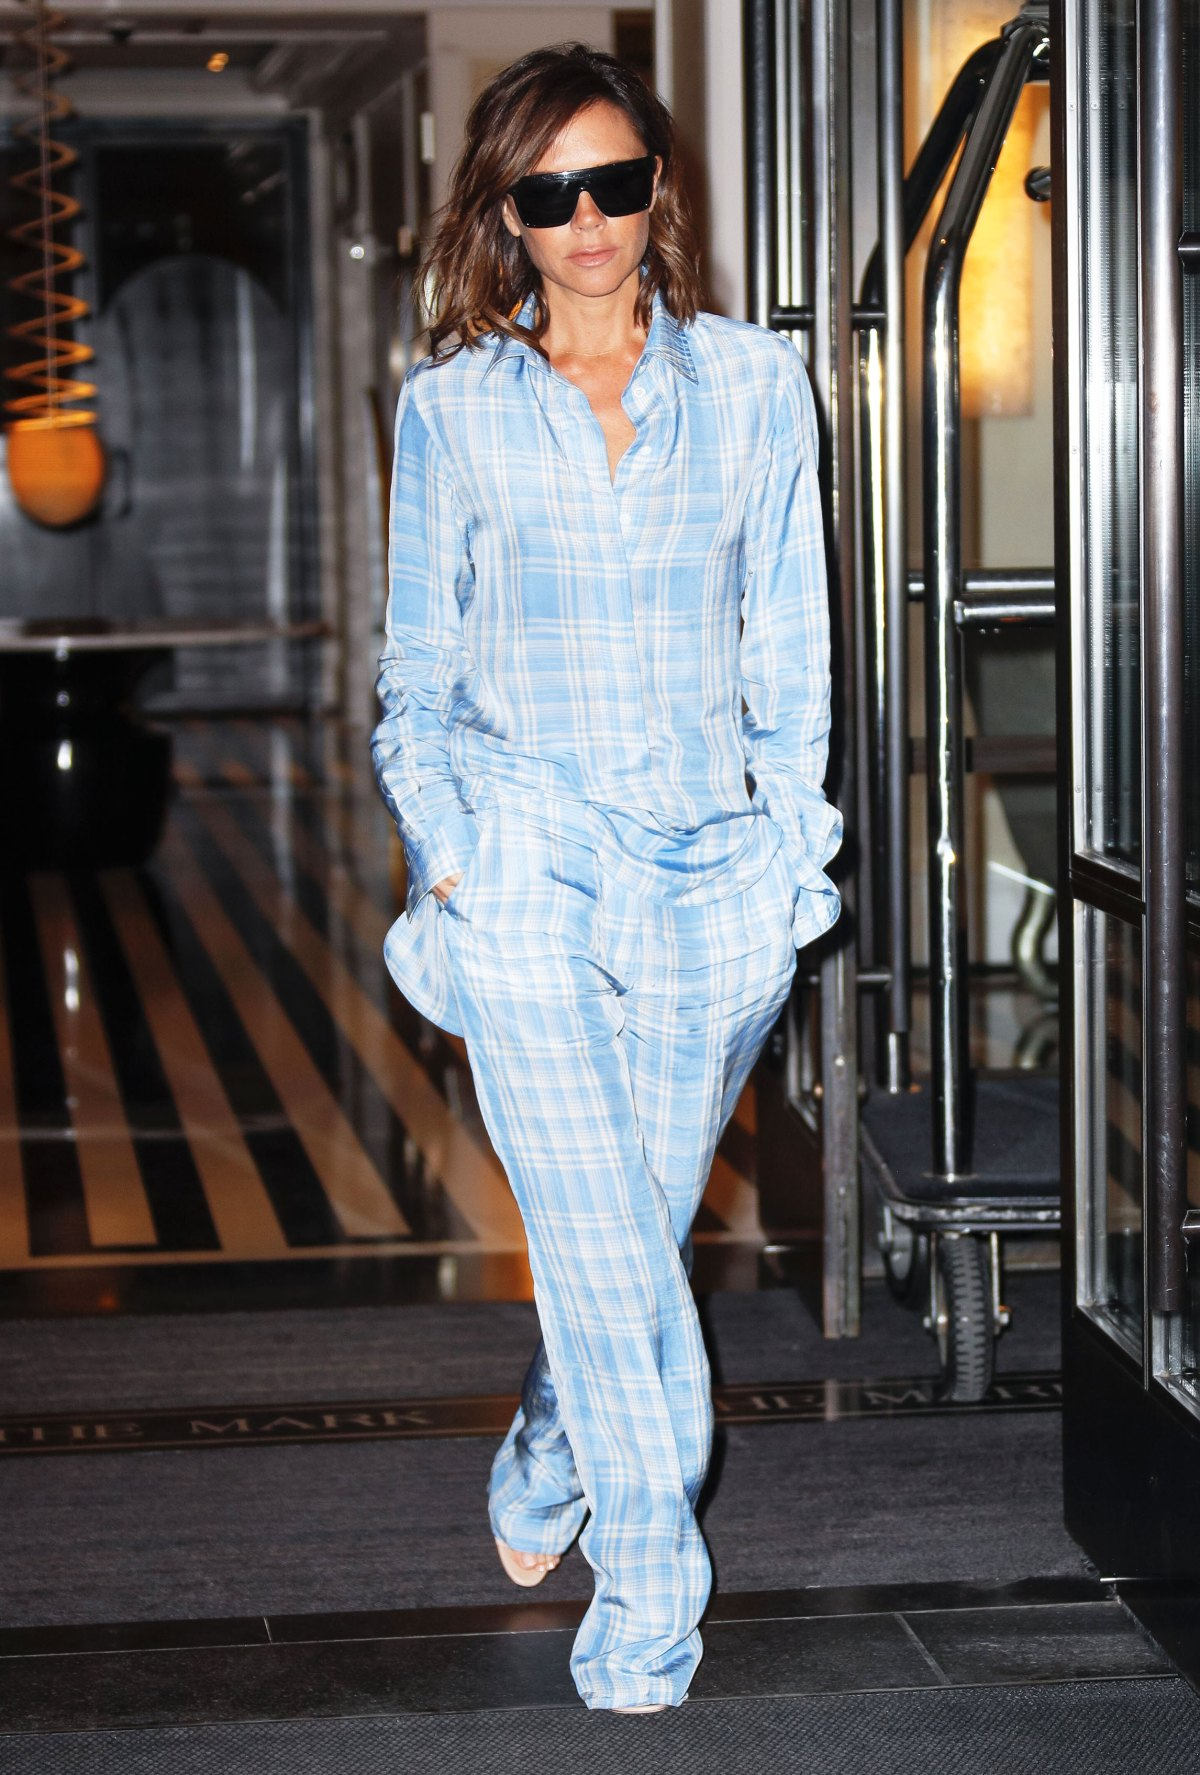 9fe77015d019 Victoria Beckham's Style From Spice Girls to Fashion Designer